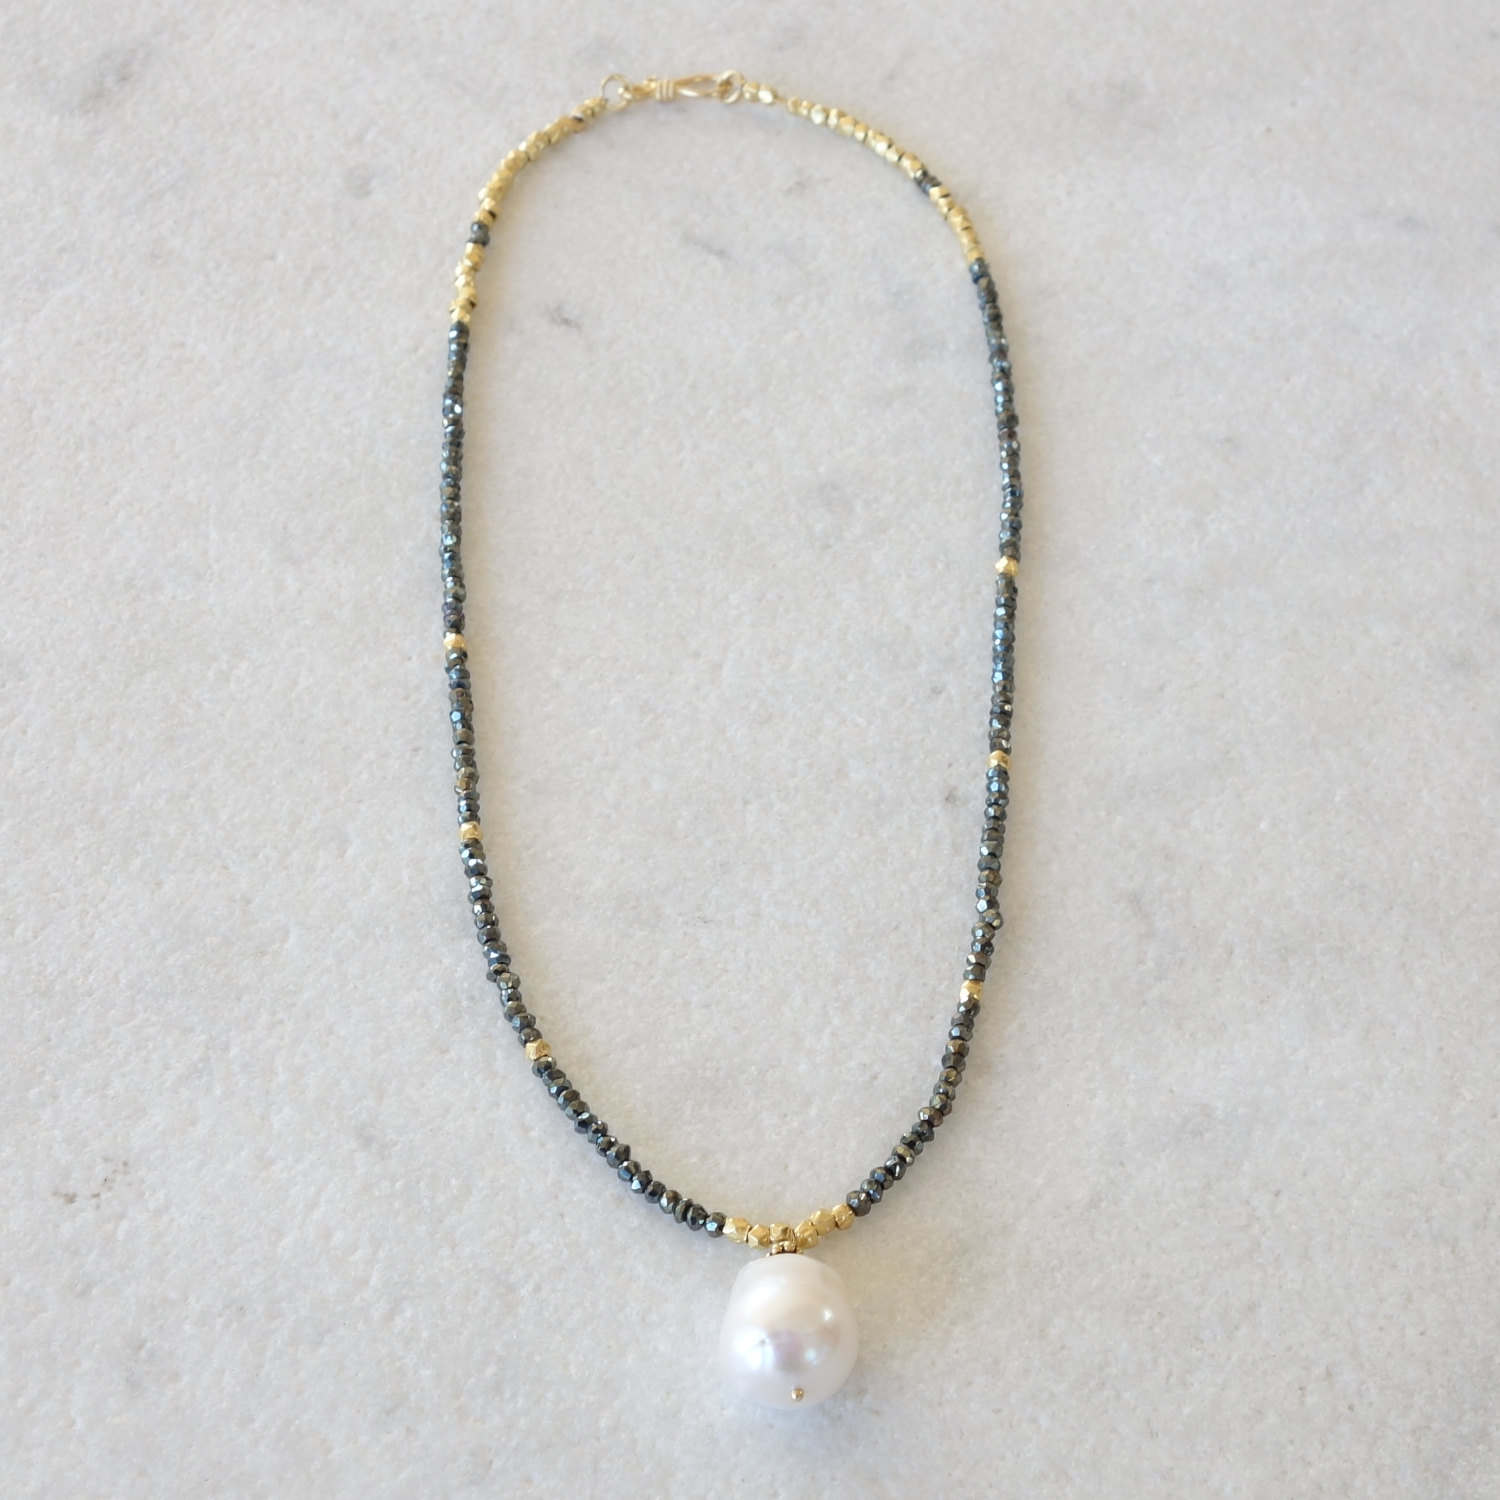 Baroque Freshwater Pearl Necklace